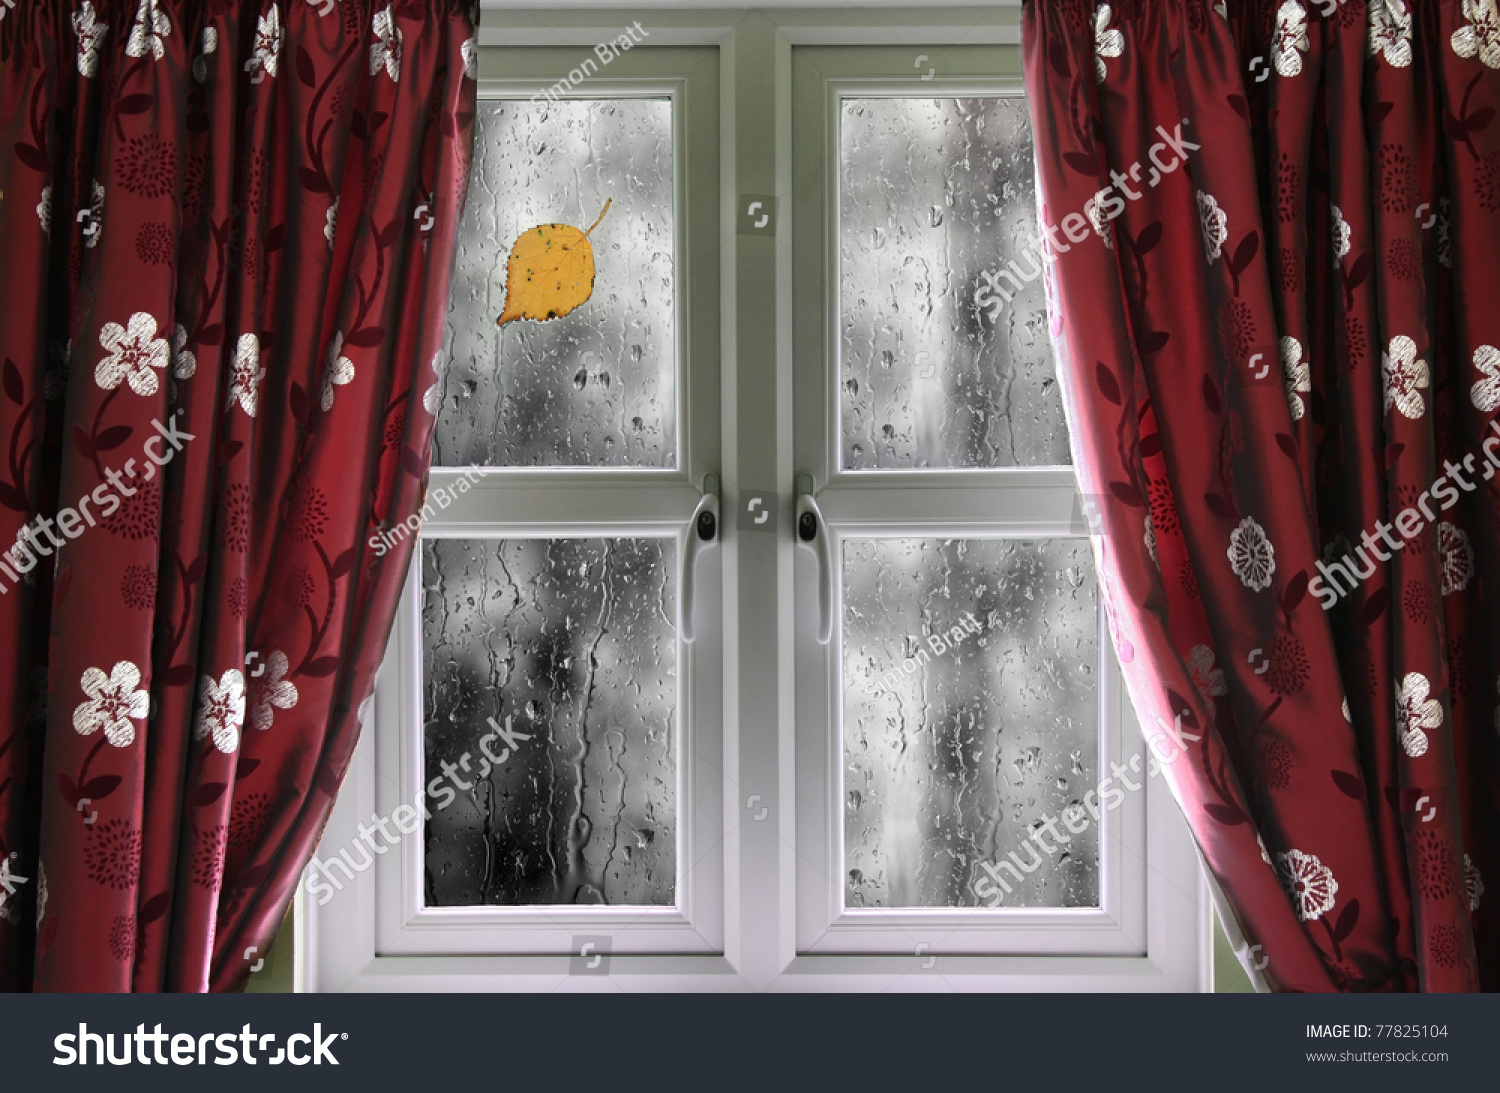 rain on a window with curtains stock photo 77825104 shutterstock. Black Bedroom Furniture Sets. Home Design Ideas